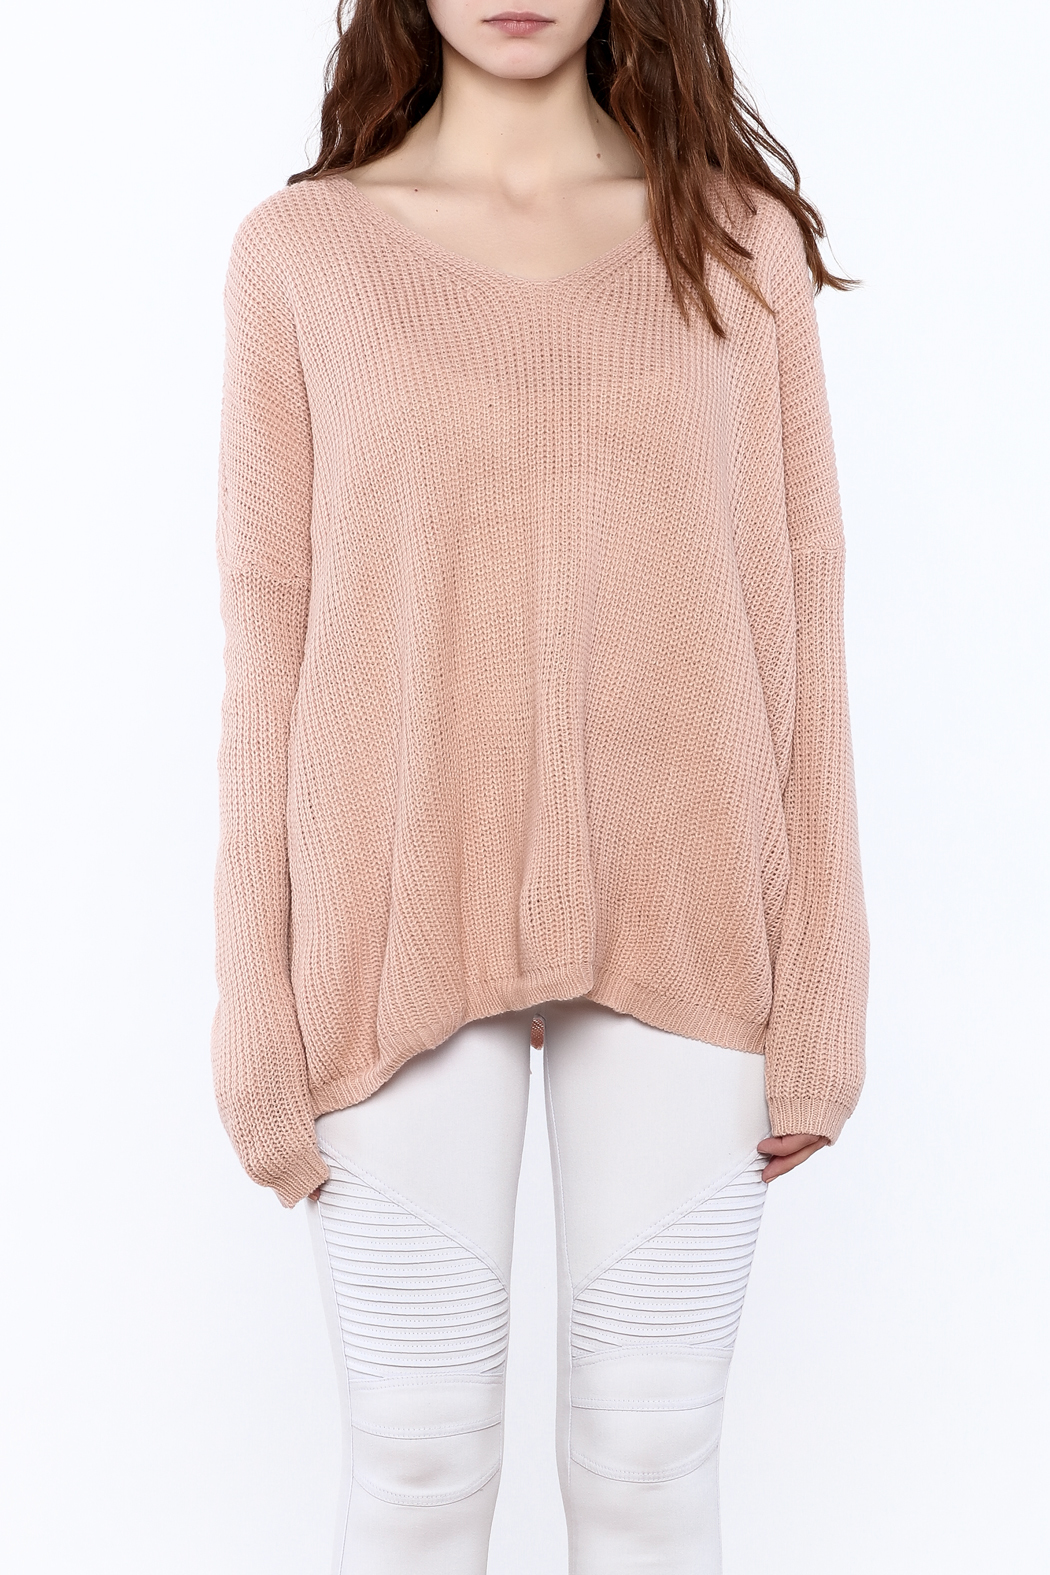 c269658f2b settle down Oversized Knitted Sweater from New York City by Angela I ...